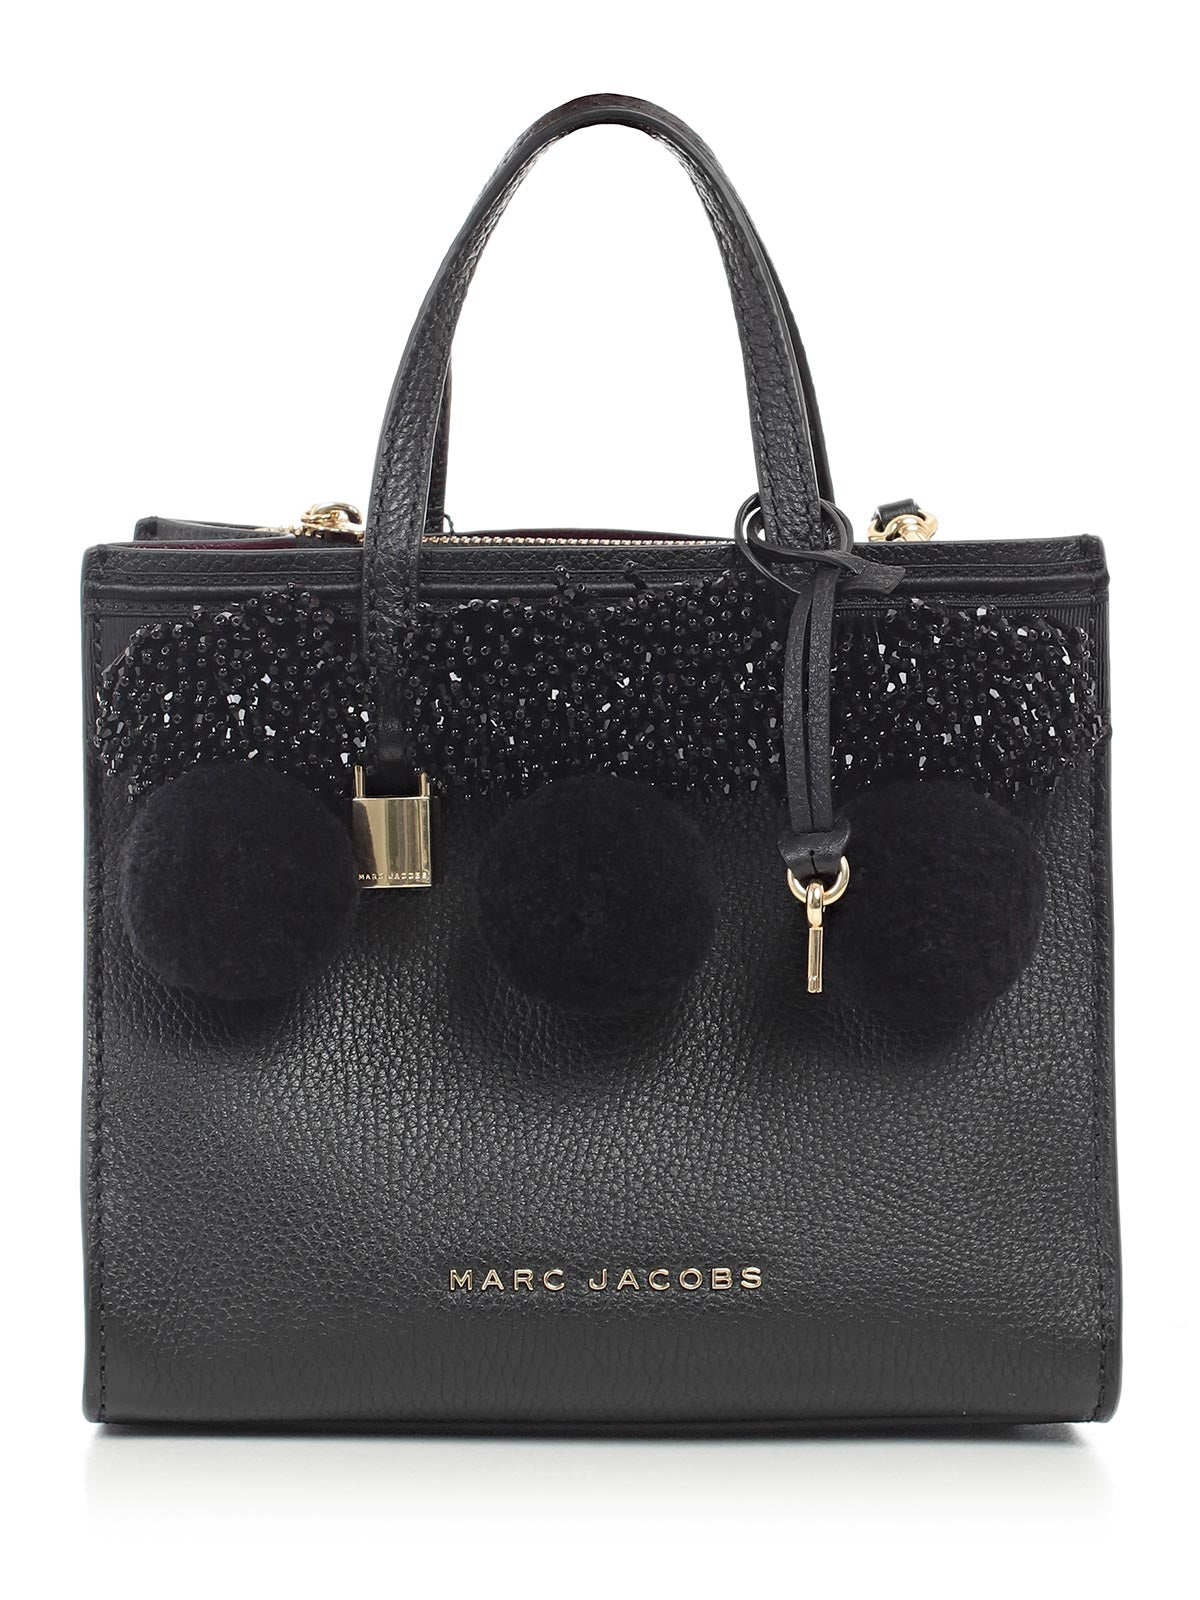 MARC JACOBS THE GRIND POM POM TOTE